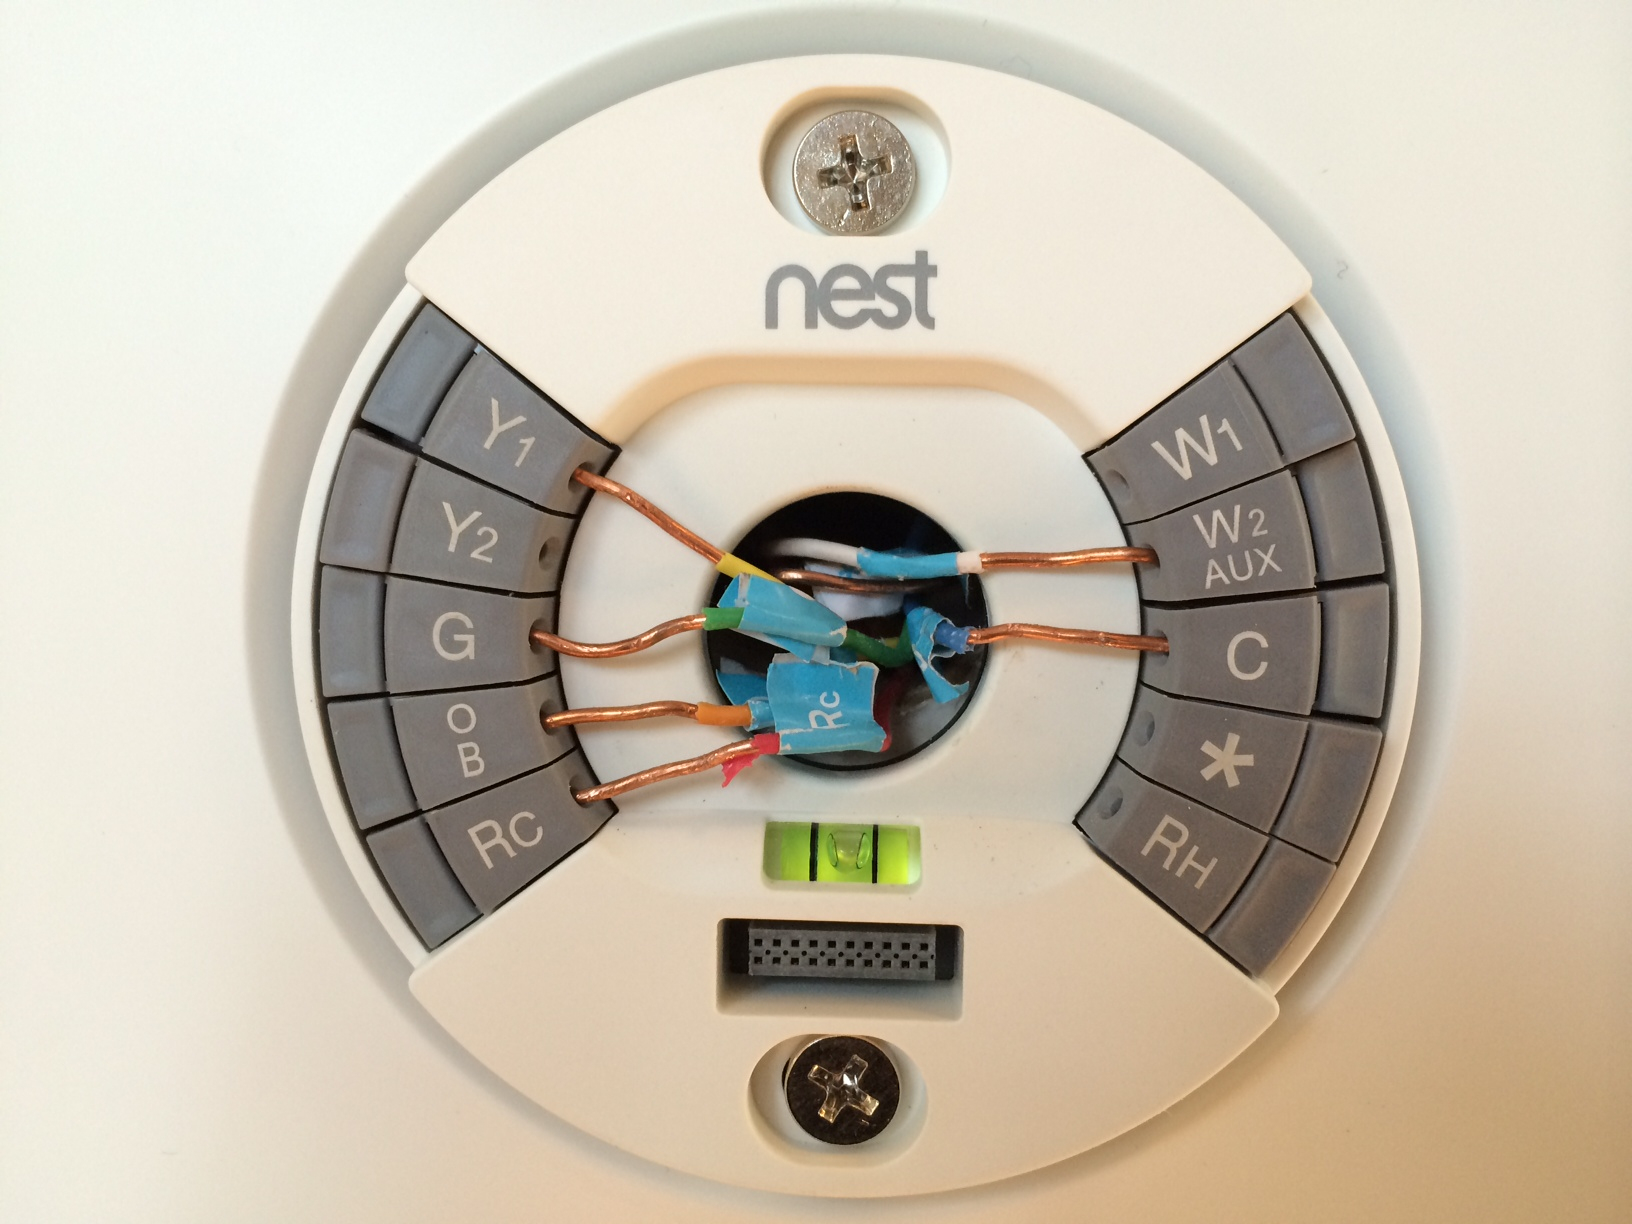 hight resolution of nest thermostat wiring diagram for furnace and air conditioning heat pump thermostat wiring diagrams heat pump wiring diagram for nest